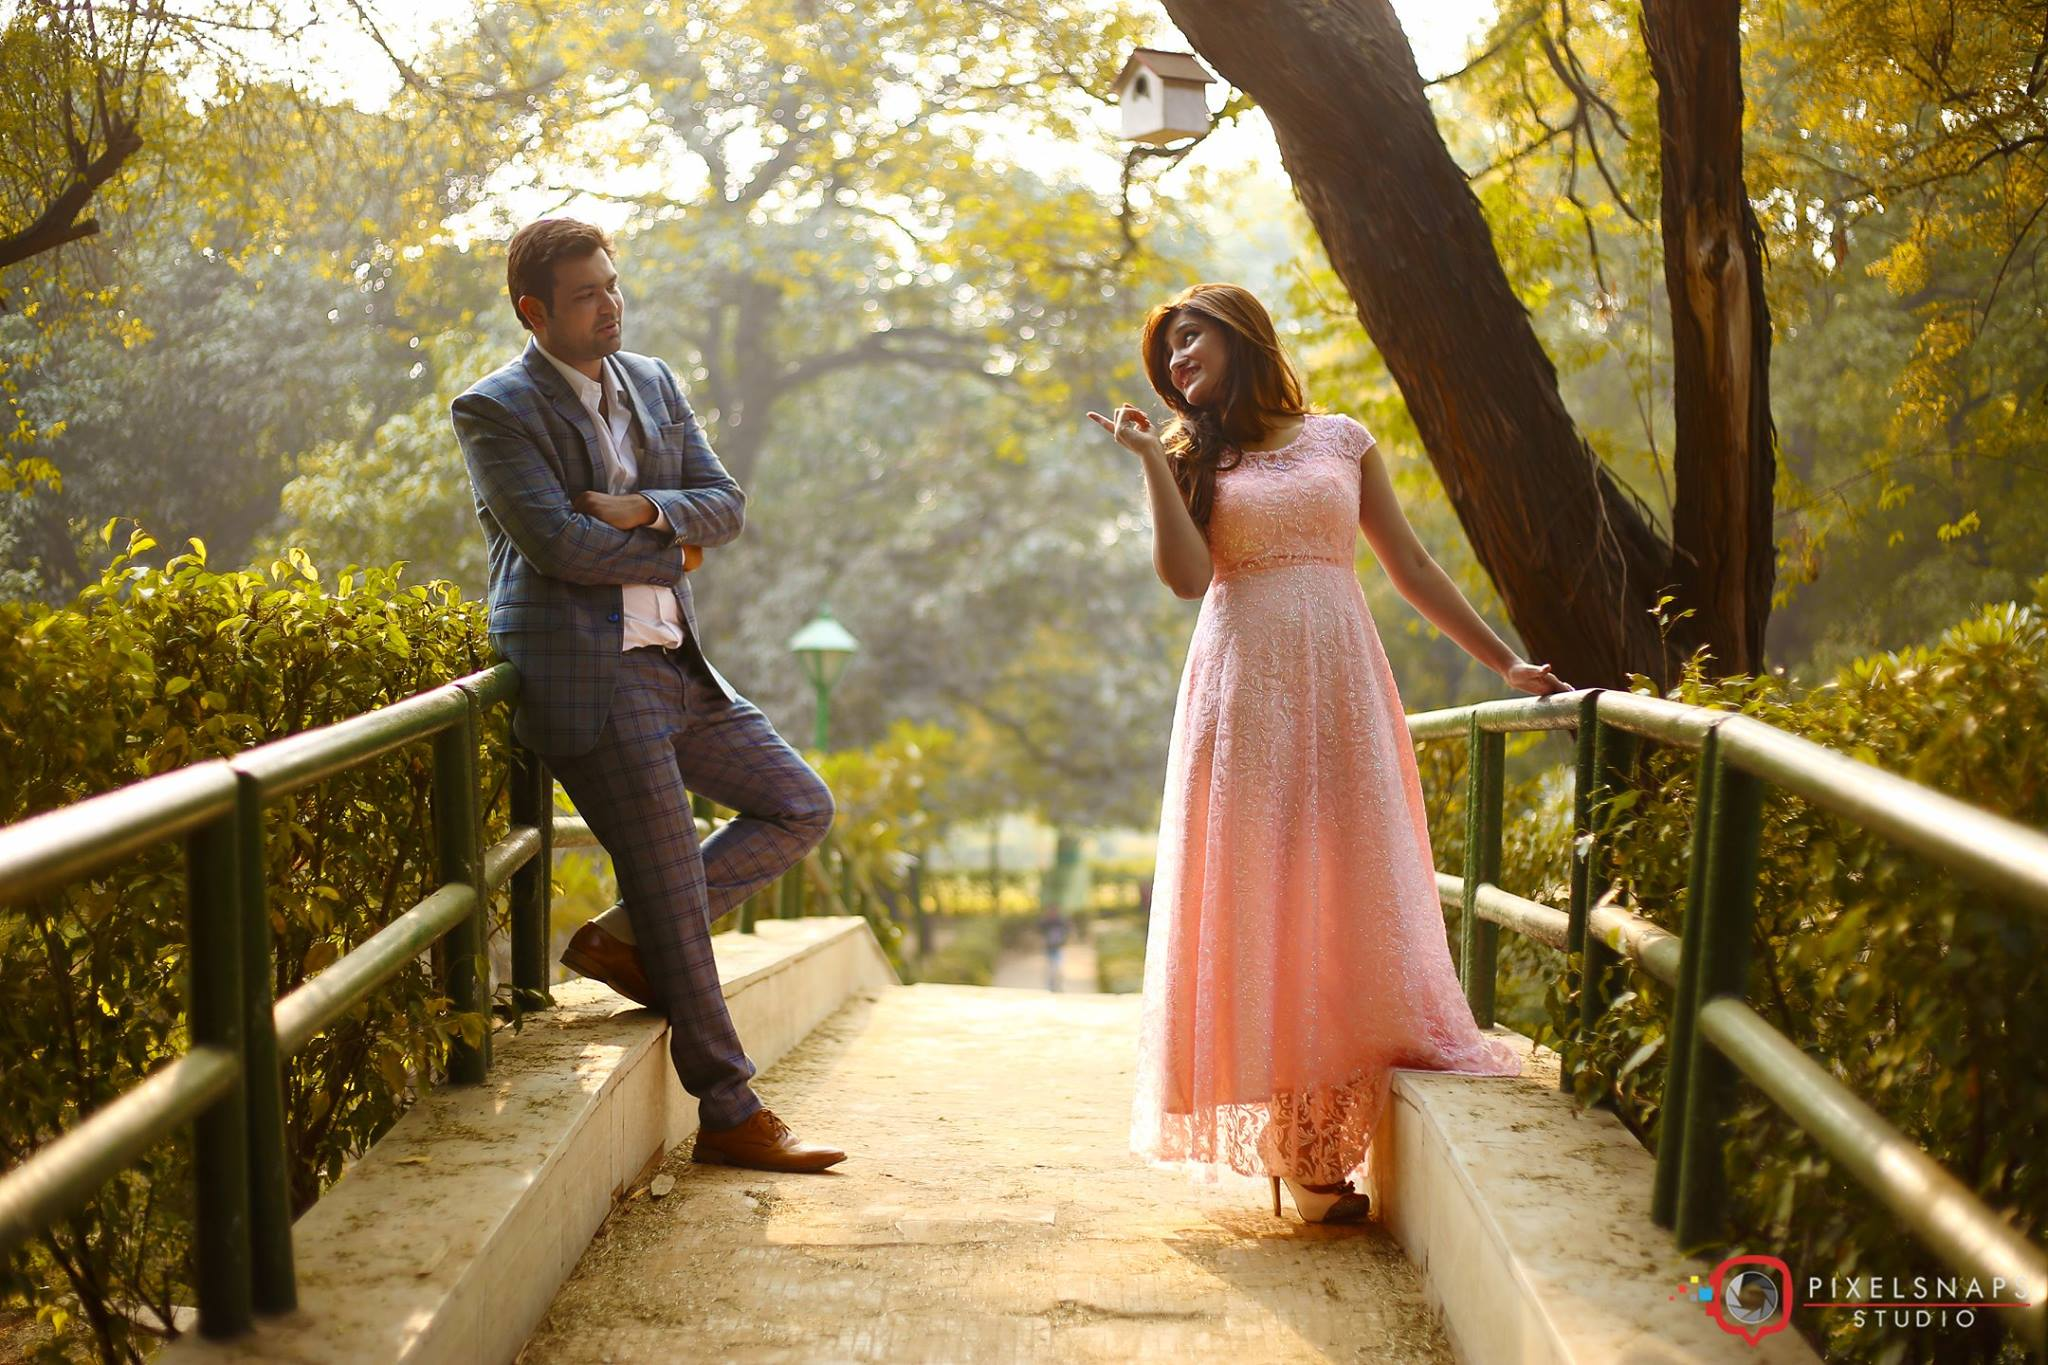 unique pre wedding photoshoot ideas